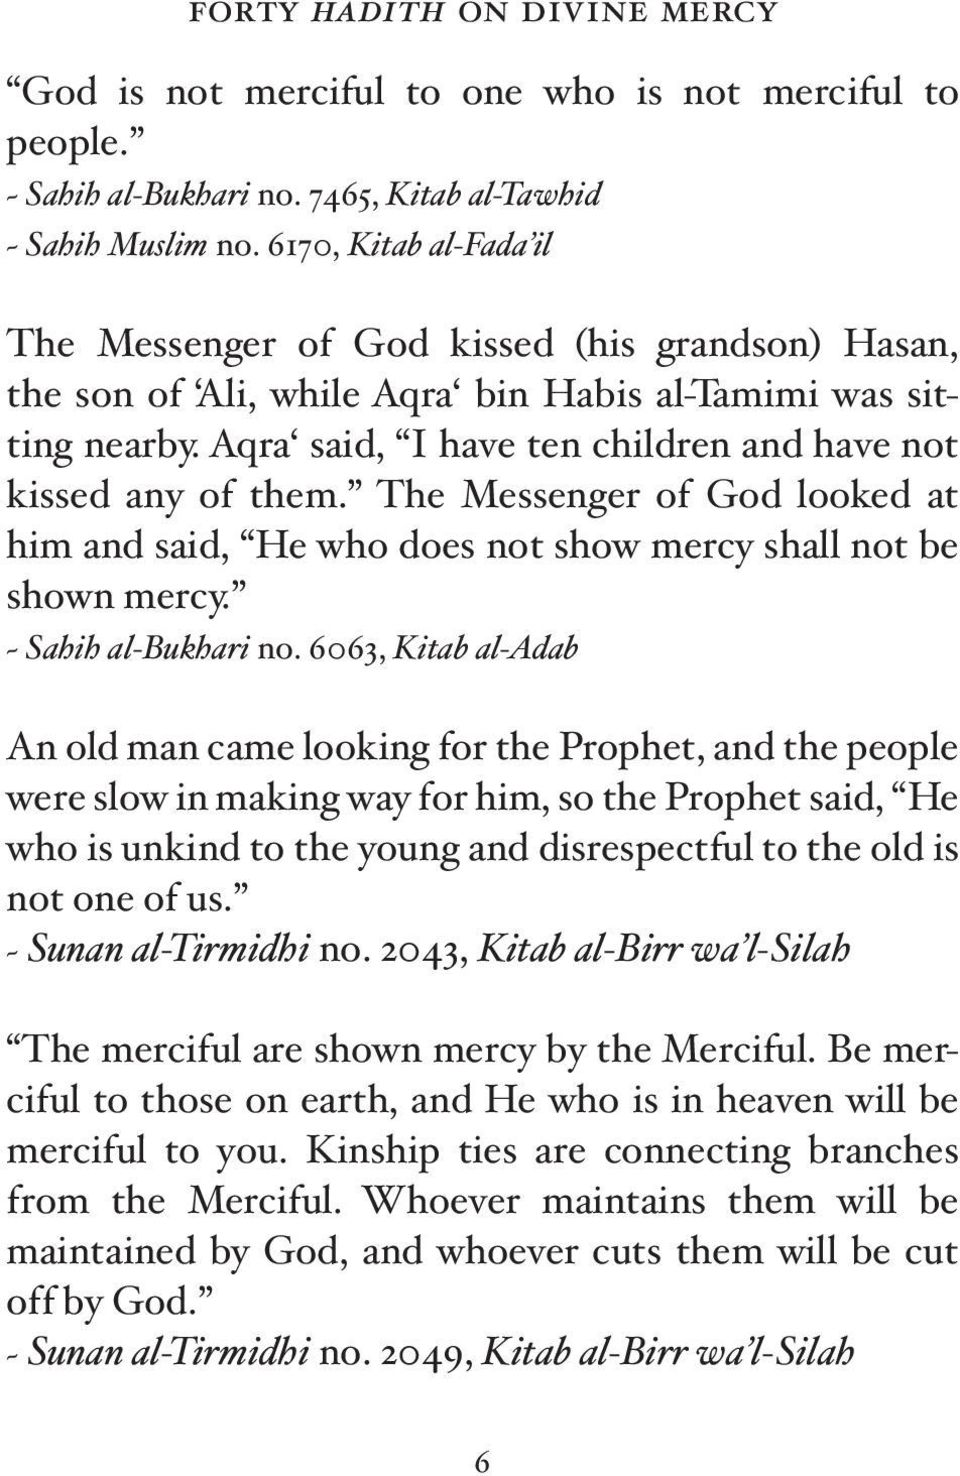 Aqra said, I have ten children and have not kissed any of them. The Messenger of God looked at him and said, He who does not show mercy shall not be shown mercy. ~ Sahih al-bukhari no.